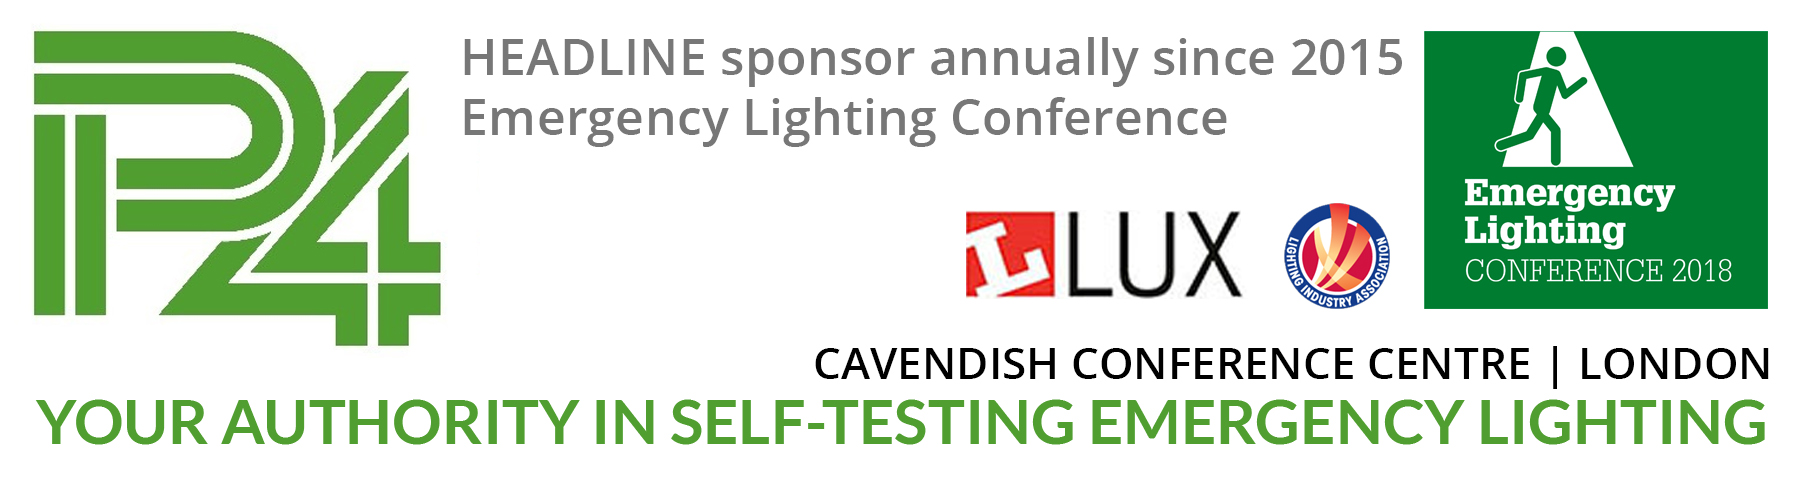 Emergency Lighting Conference P4 Sponsor banner